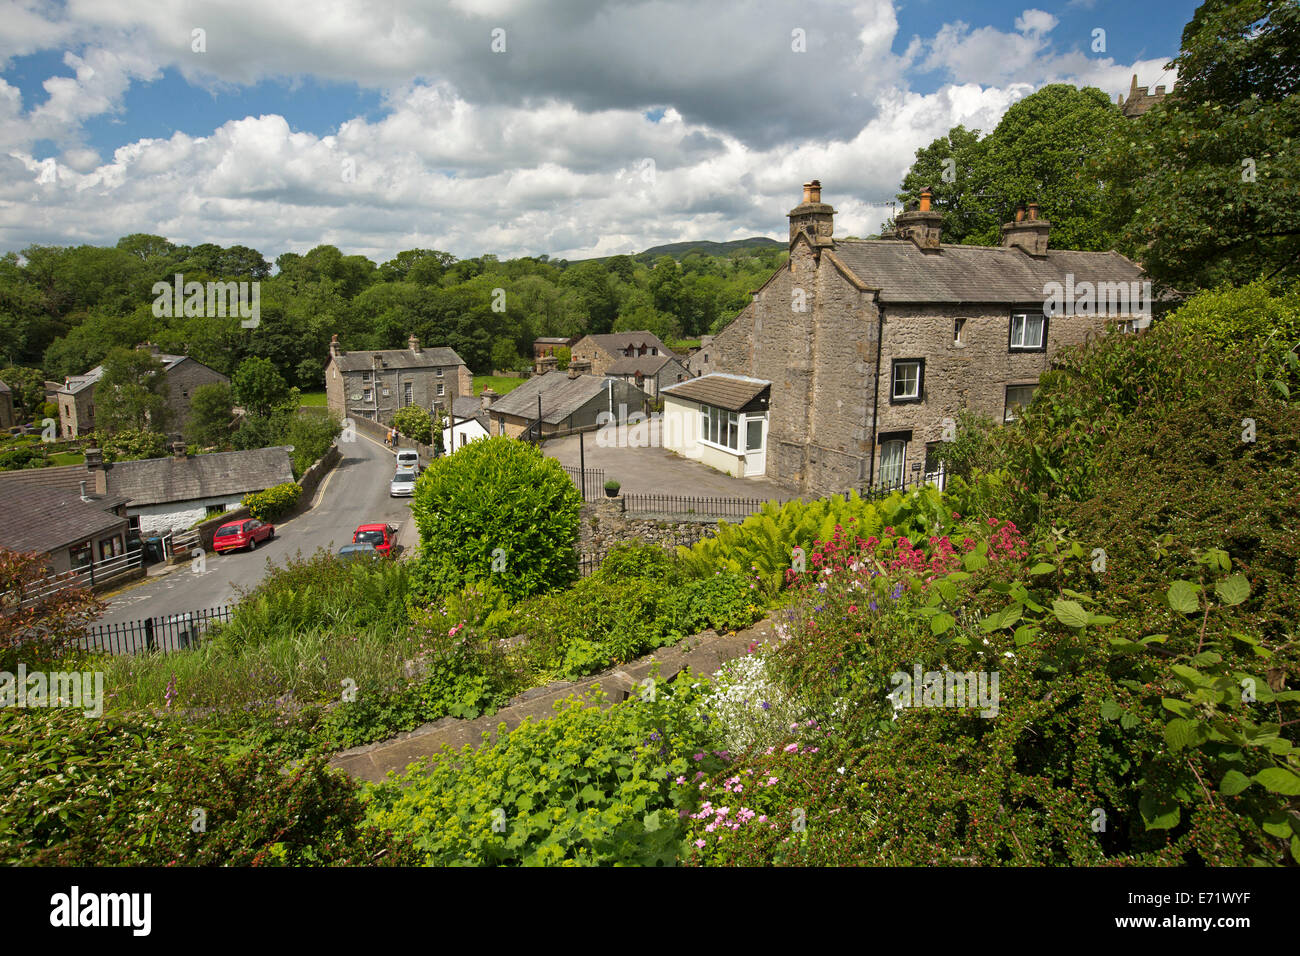 Lush gardens surrounding stone houses in old village of Ingleton in Yorkshire Dales region, England - Stock Image